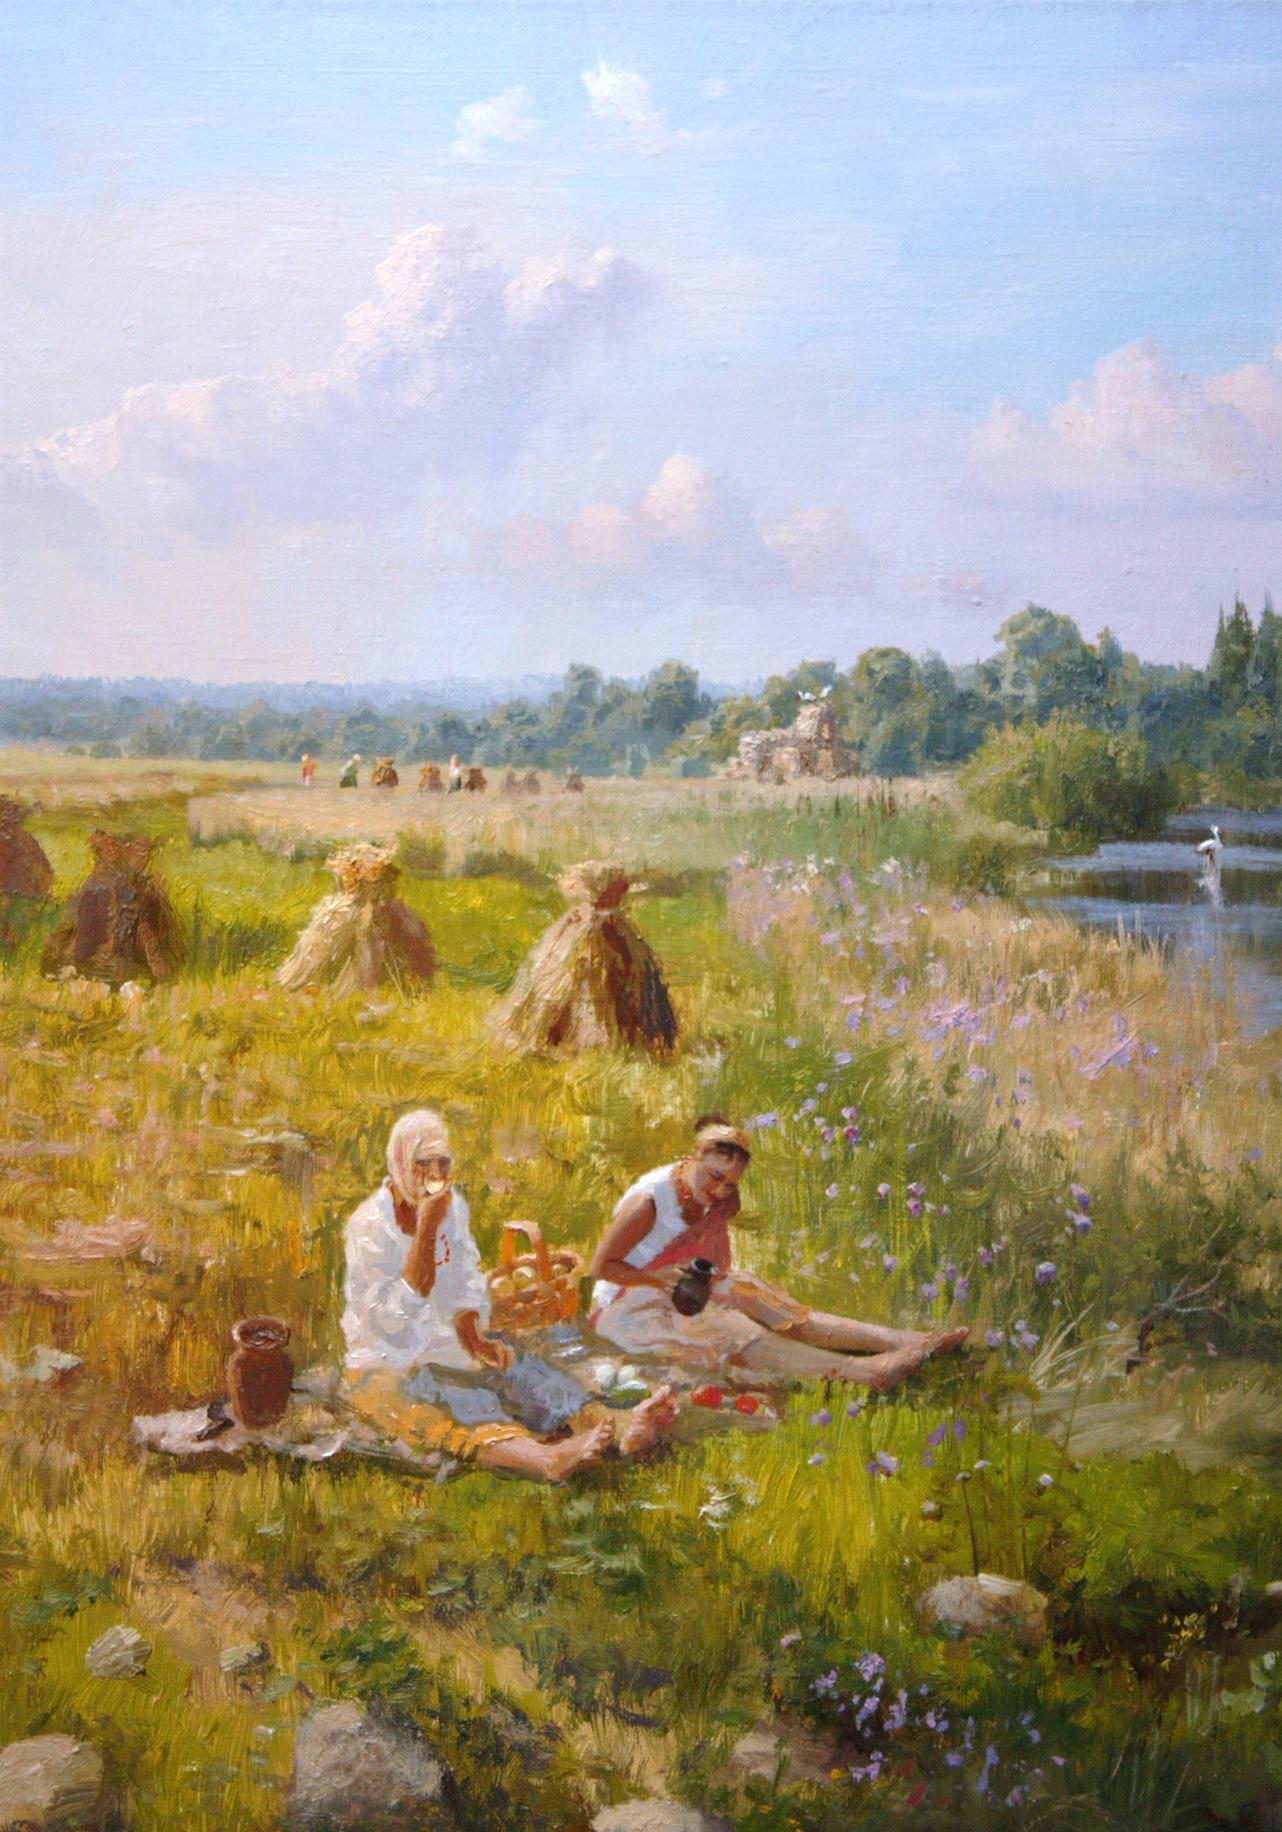 Russian soul: Pictures of Russian peasant life by Vladimir Zhdanov - 17